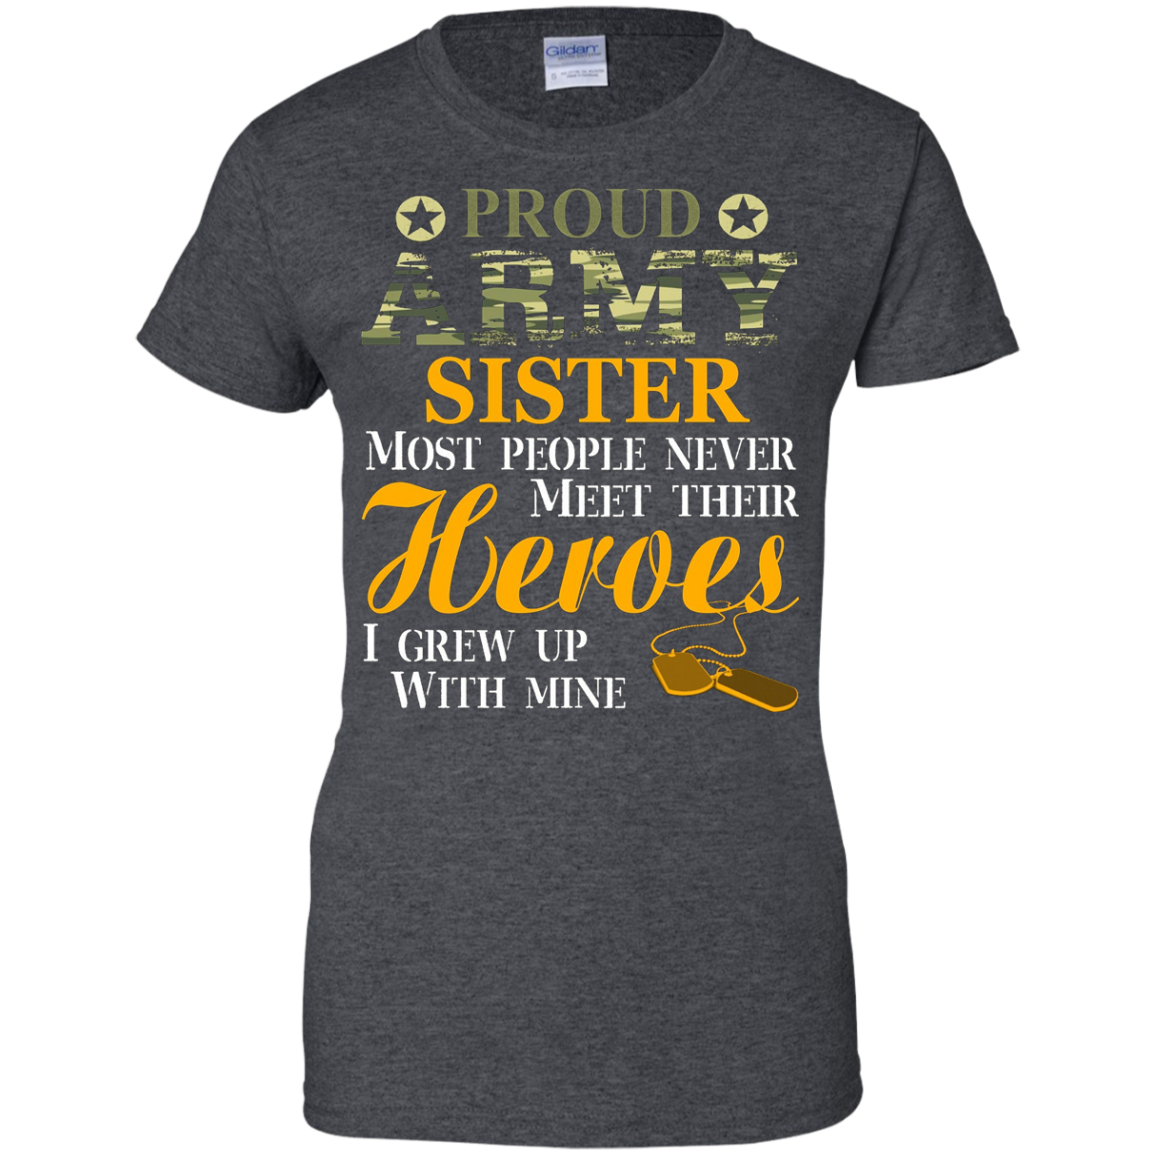 Proud US Army Soldier Sister T Shirt Military Hero